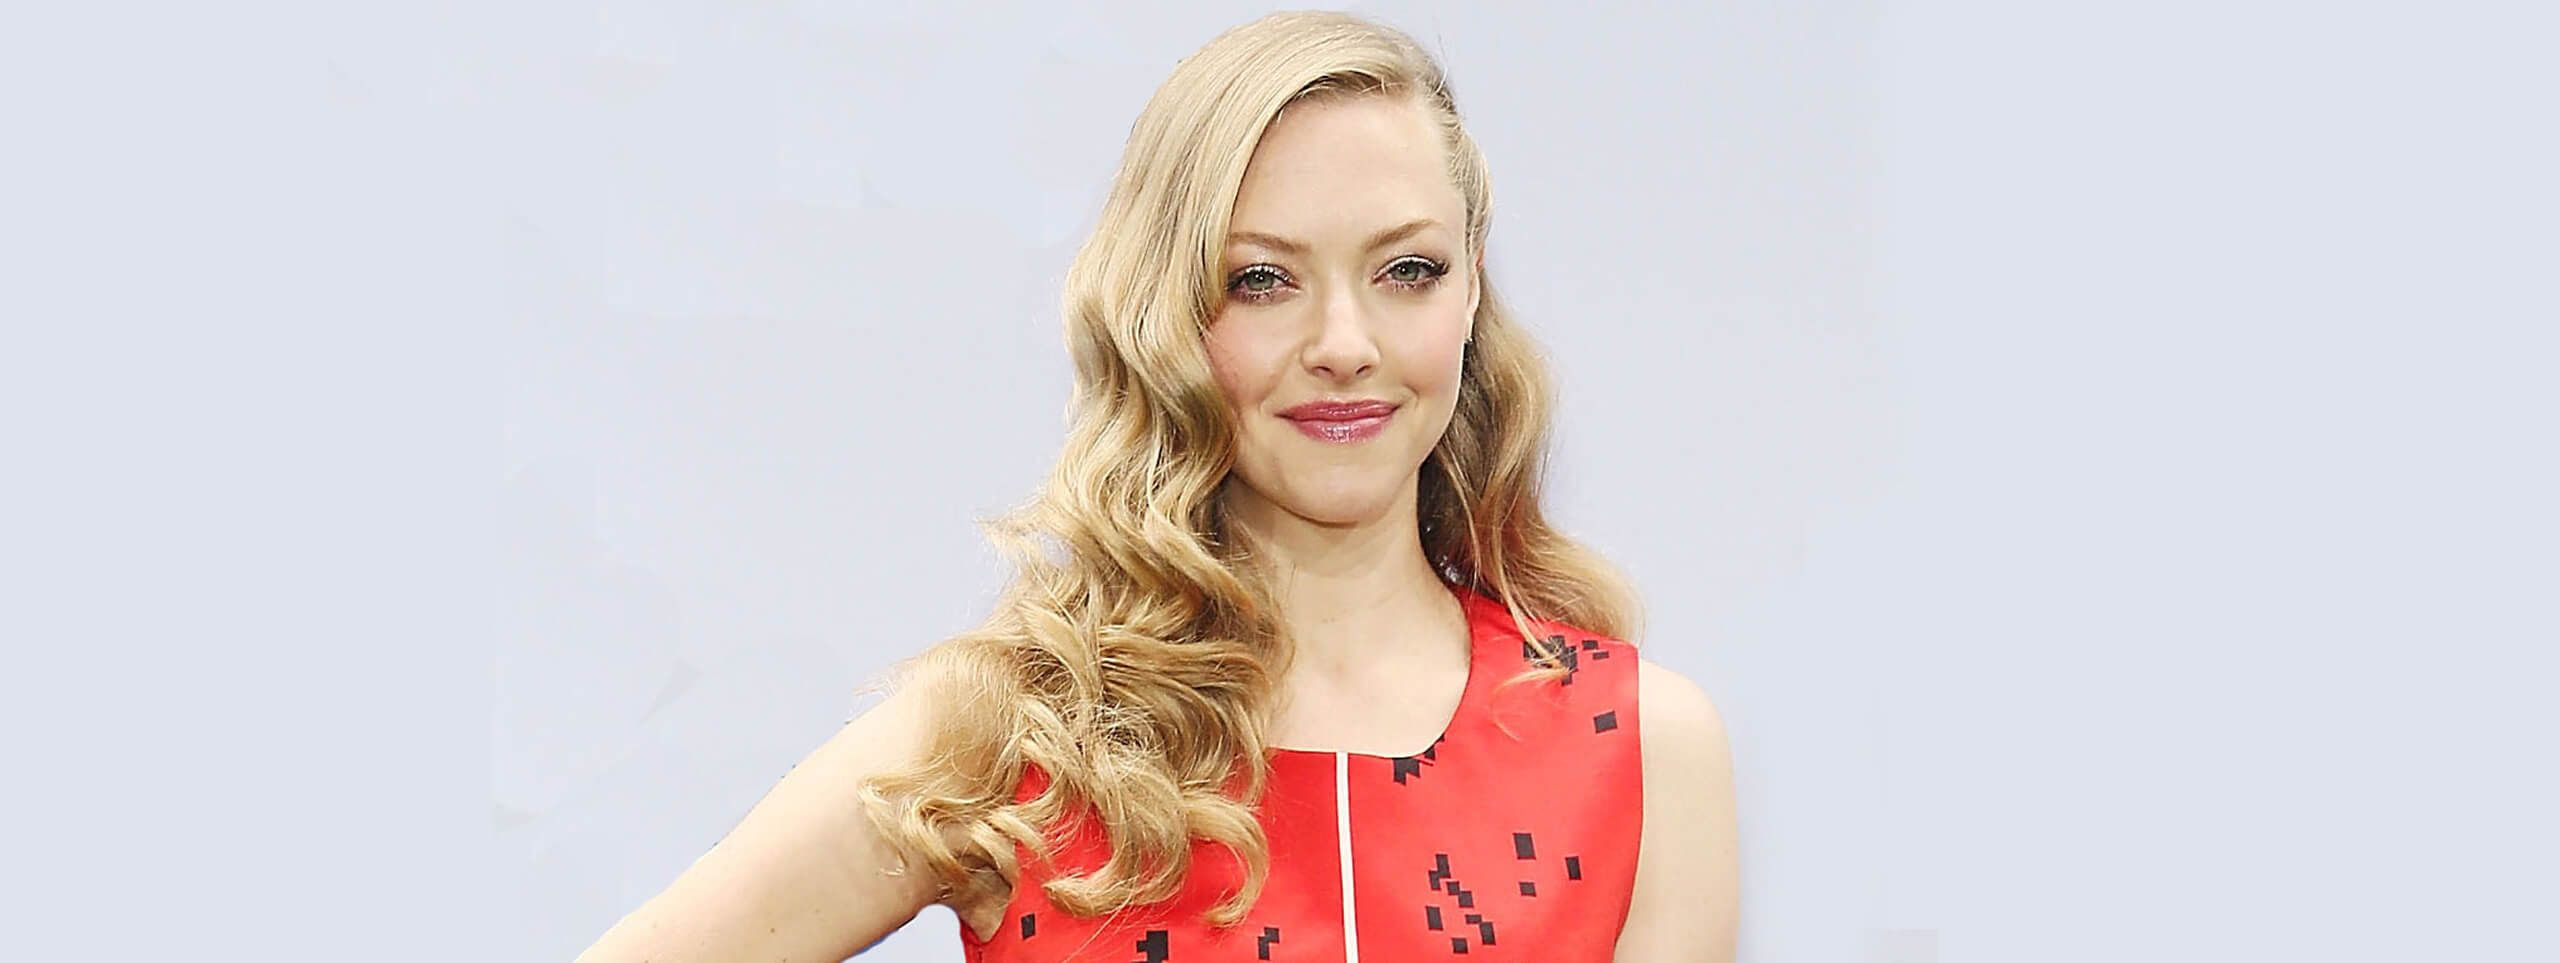 Amanda Seyfried queue-de-cheval asymétrique